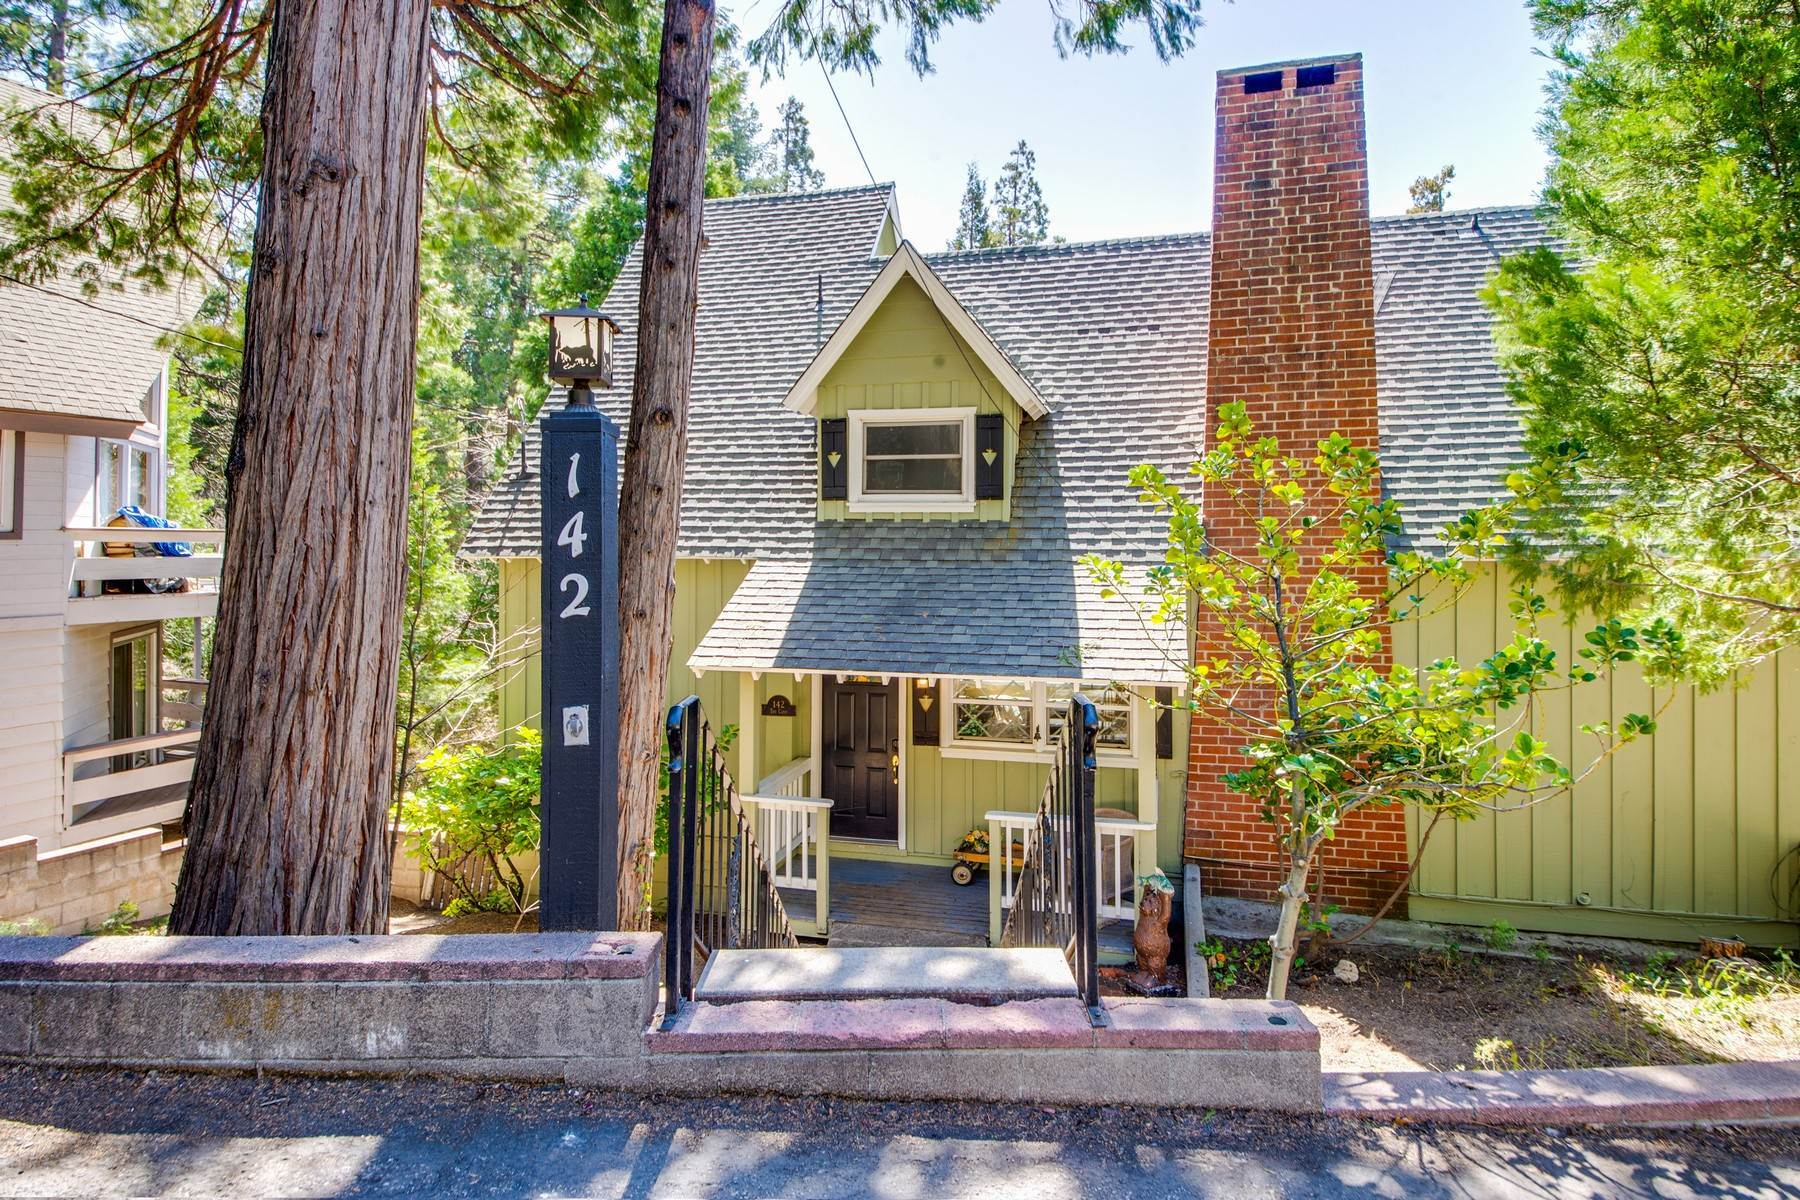 Single Family Homes for Sale at 142 John Muir Rd Lake Arrowhead, California 92352 United States